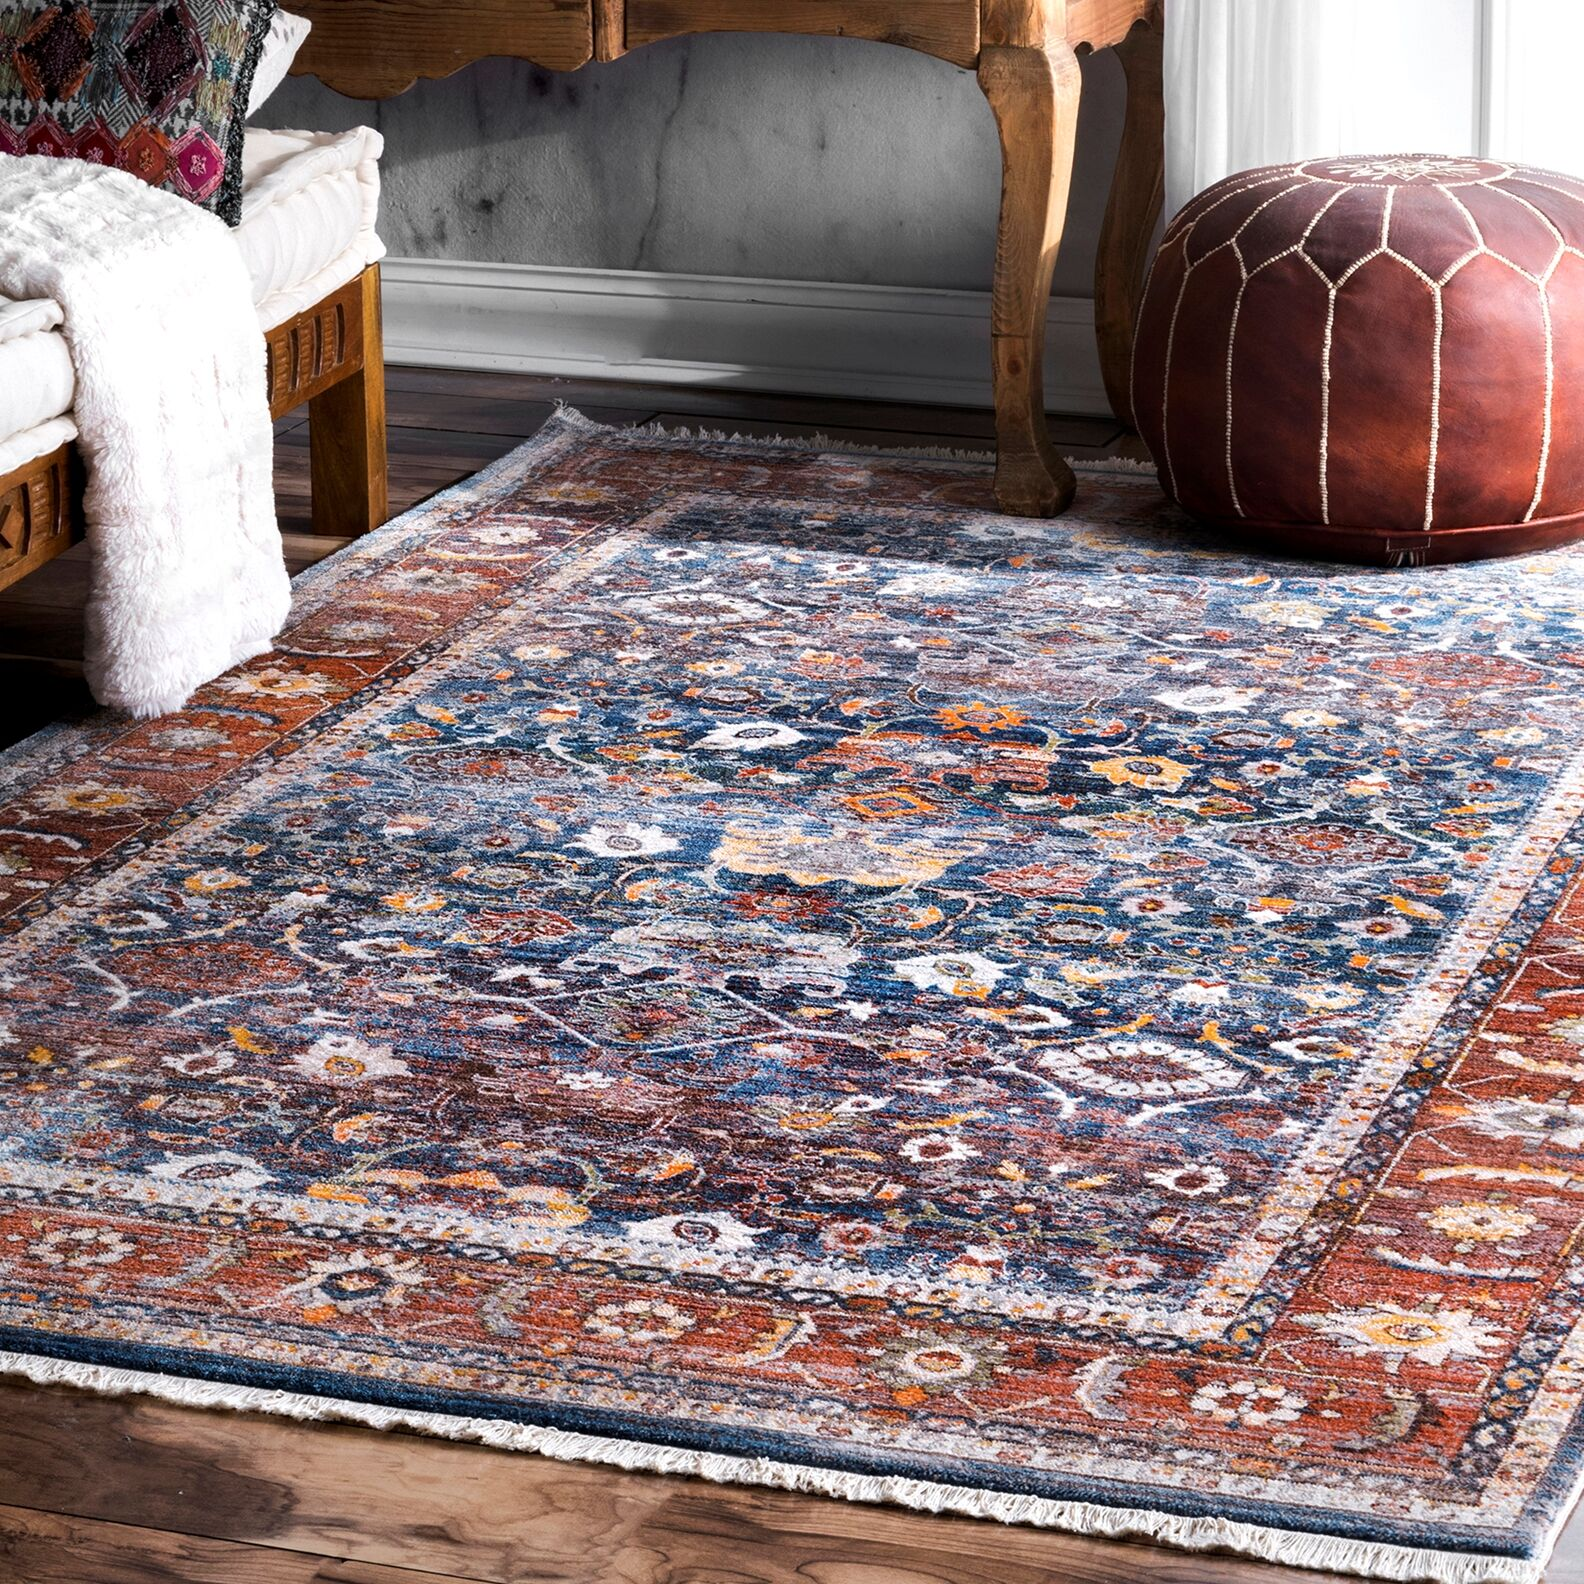 Feldmann Brown Area Rug Rug Size: Rectangle 6' 7